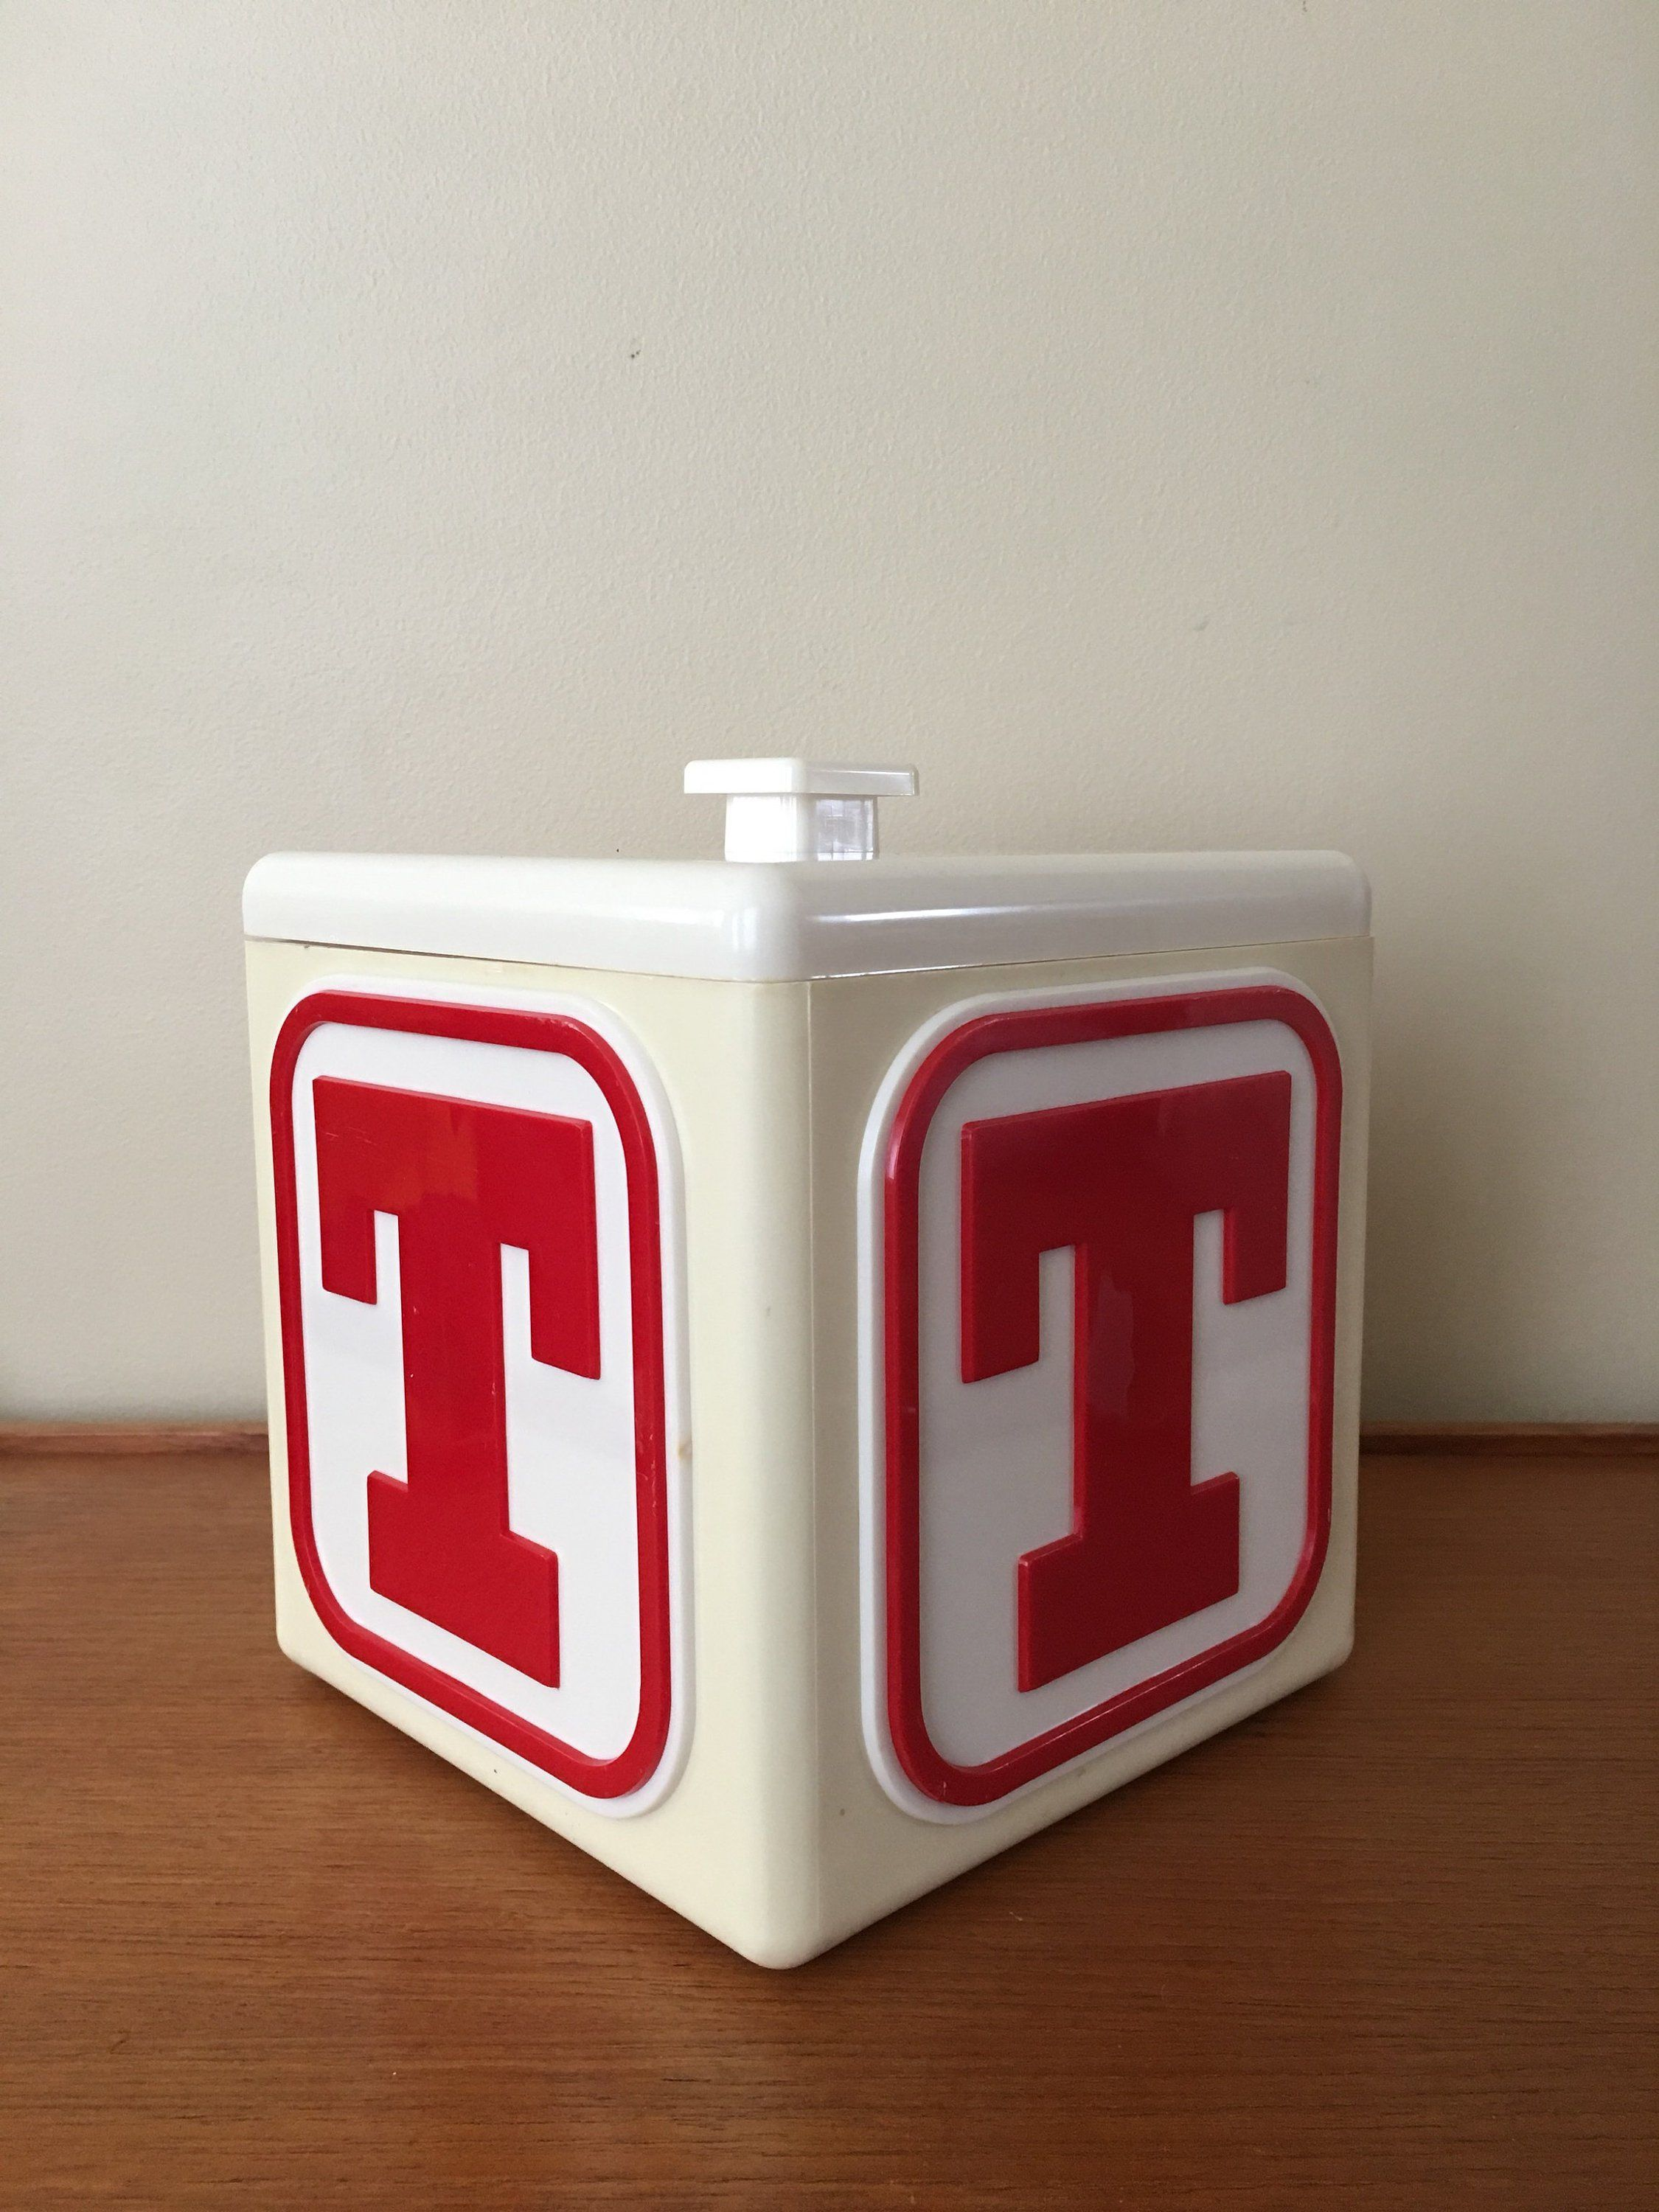 Vintage T Tennents Lager Mod Ice Bucket Square Ice Bucket With Letter T 1960s Red And White Plastic Ice Bucket Mid C Tennents Lager Fancy Packaging Lager